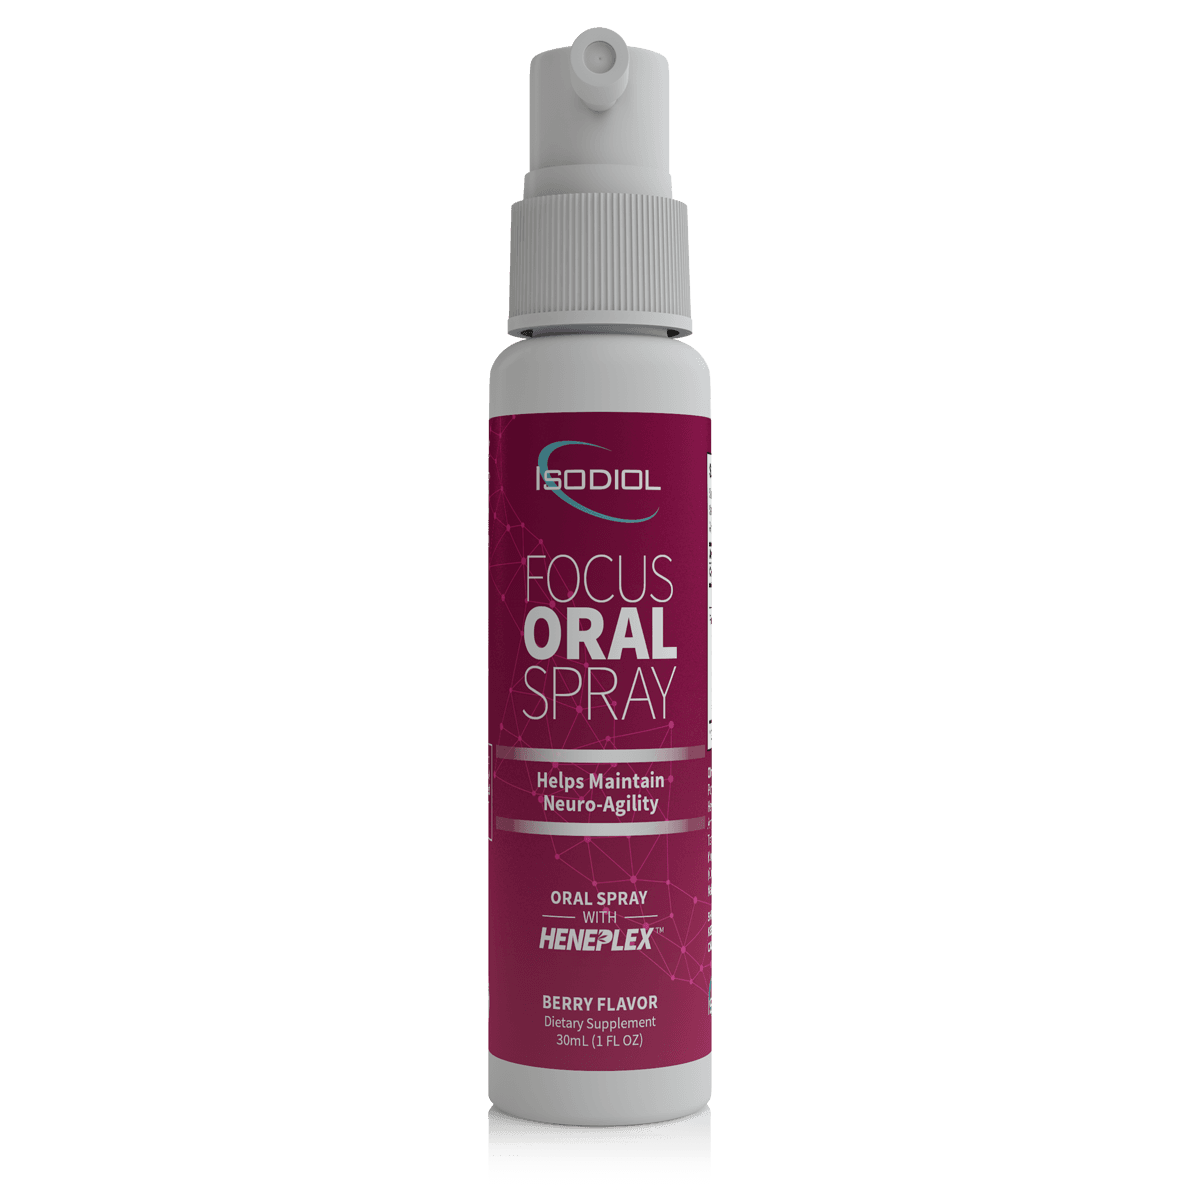 Focus Oral Spray